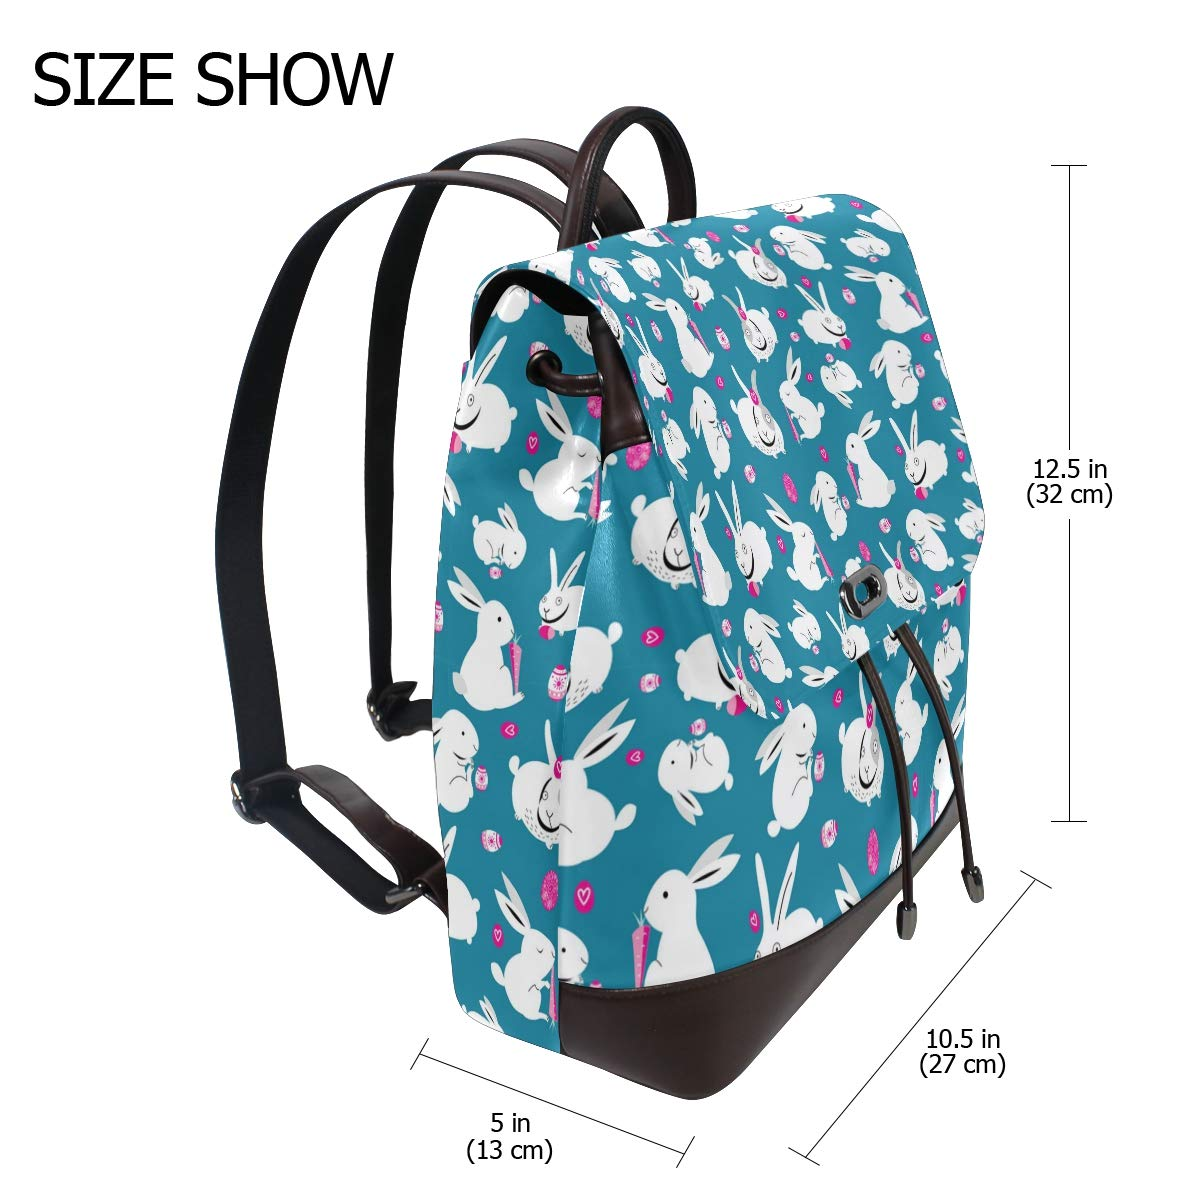 Leather Easter White Bunnies With Carrots Blue Backpack Daypack Elegant Ladies Travel Bag Women Men